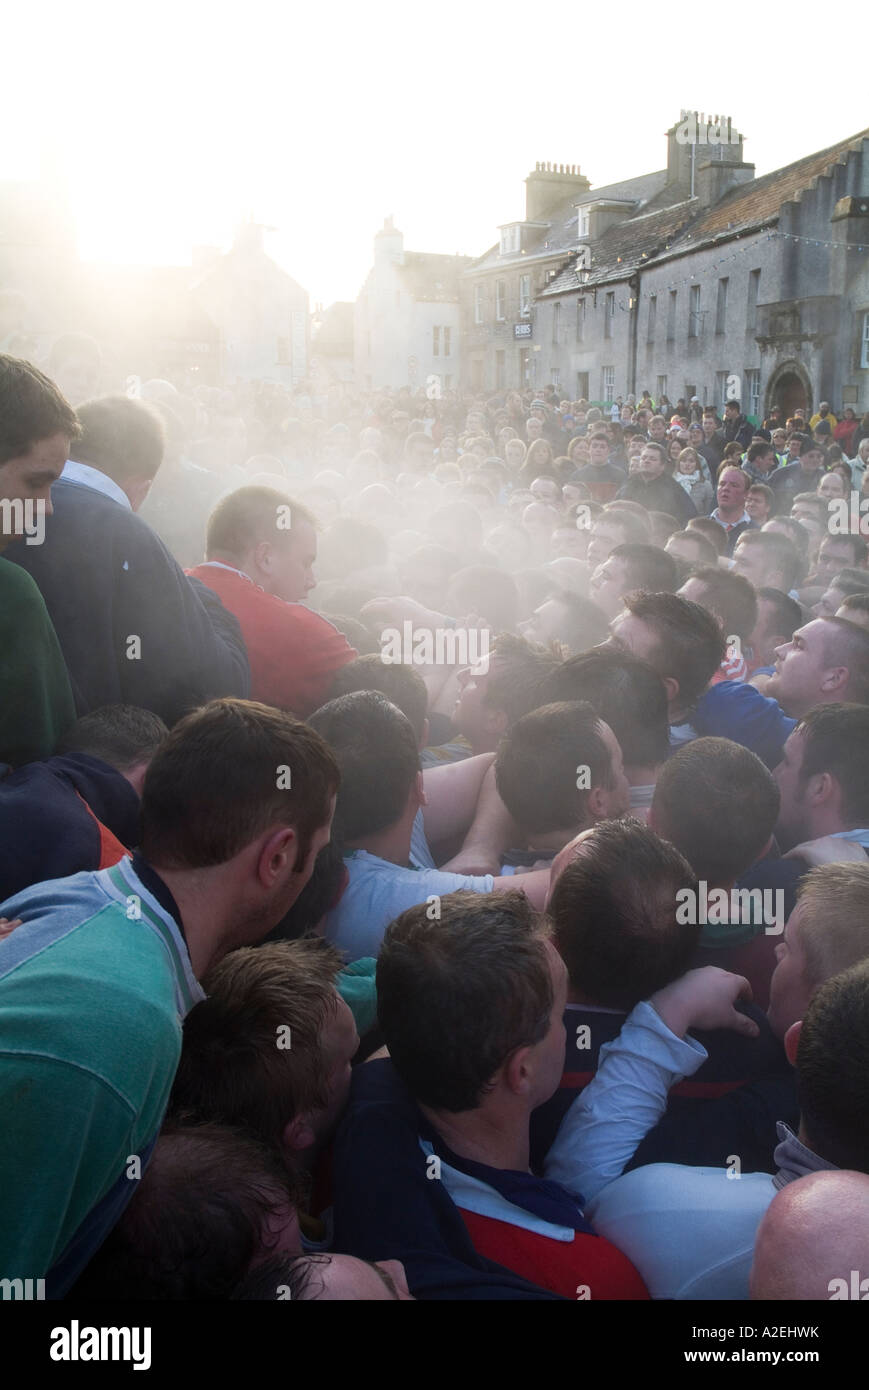 dh The Ba KIRKWALL ORKNEY Steaming pack of Ba players and spectators in Broad Street Stock Photo